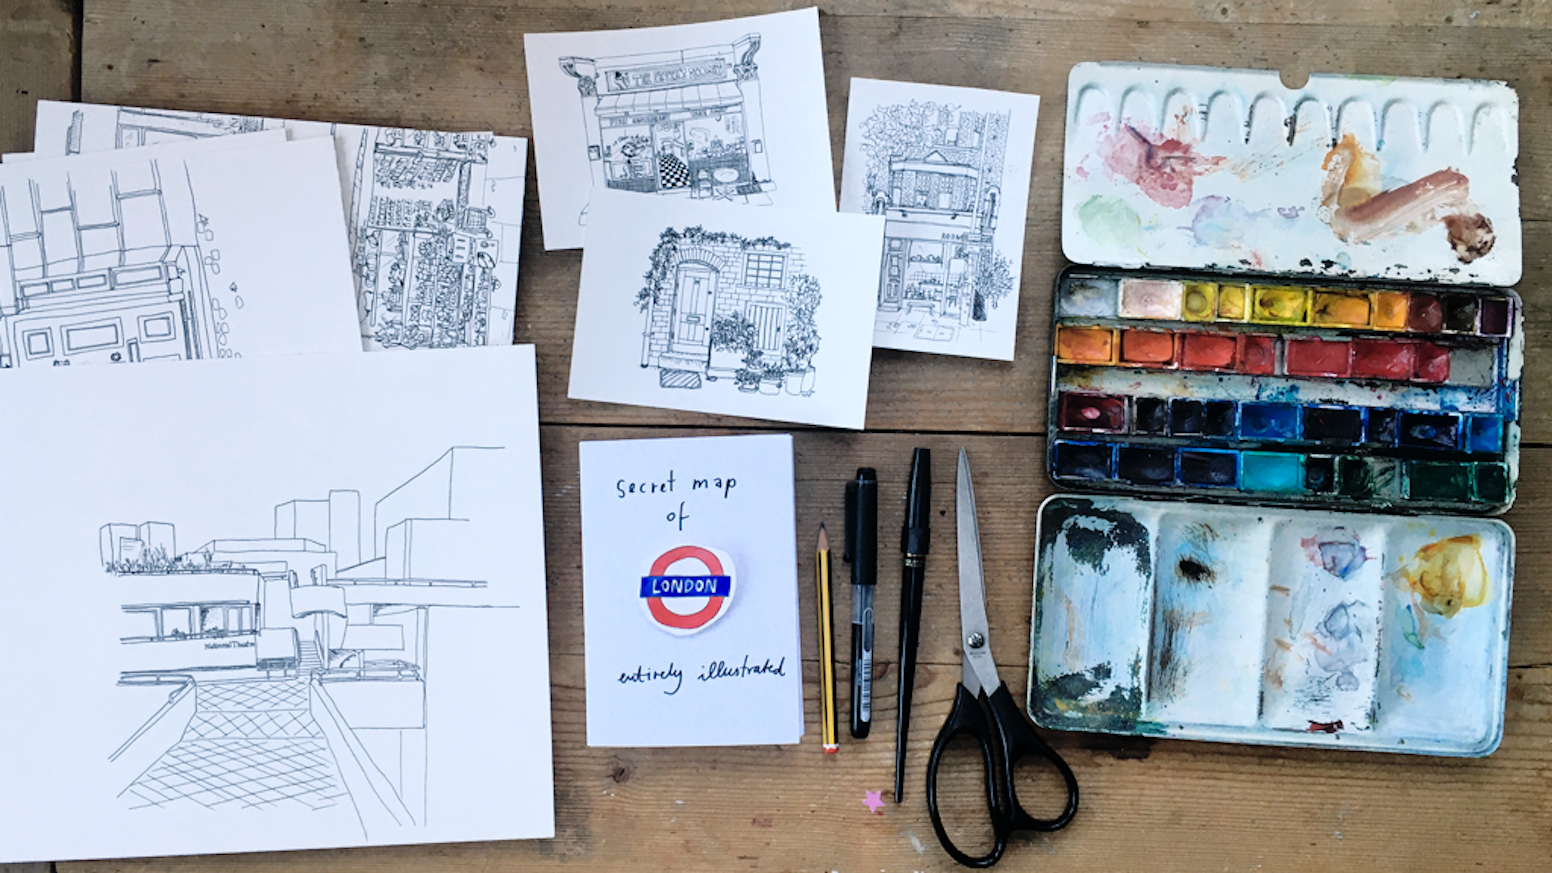 An A 3 sized illustrated map of London with secret places and tips. Rediscover the city and find beauty where you may not expect it.